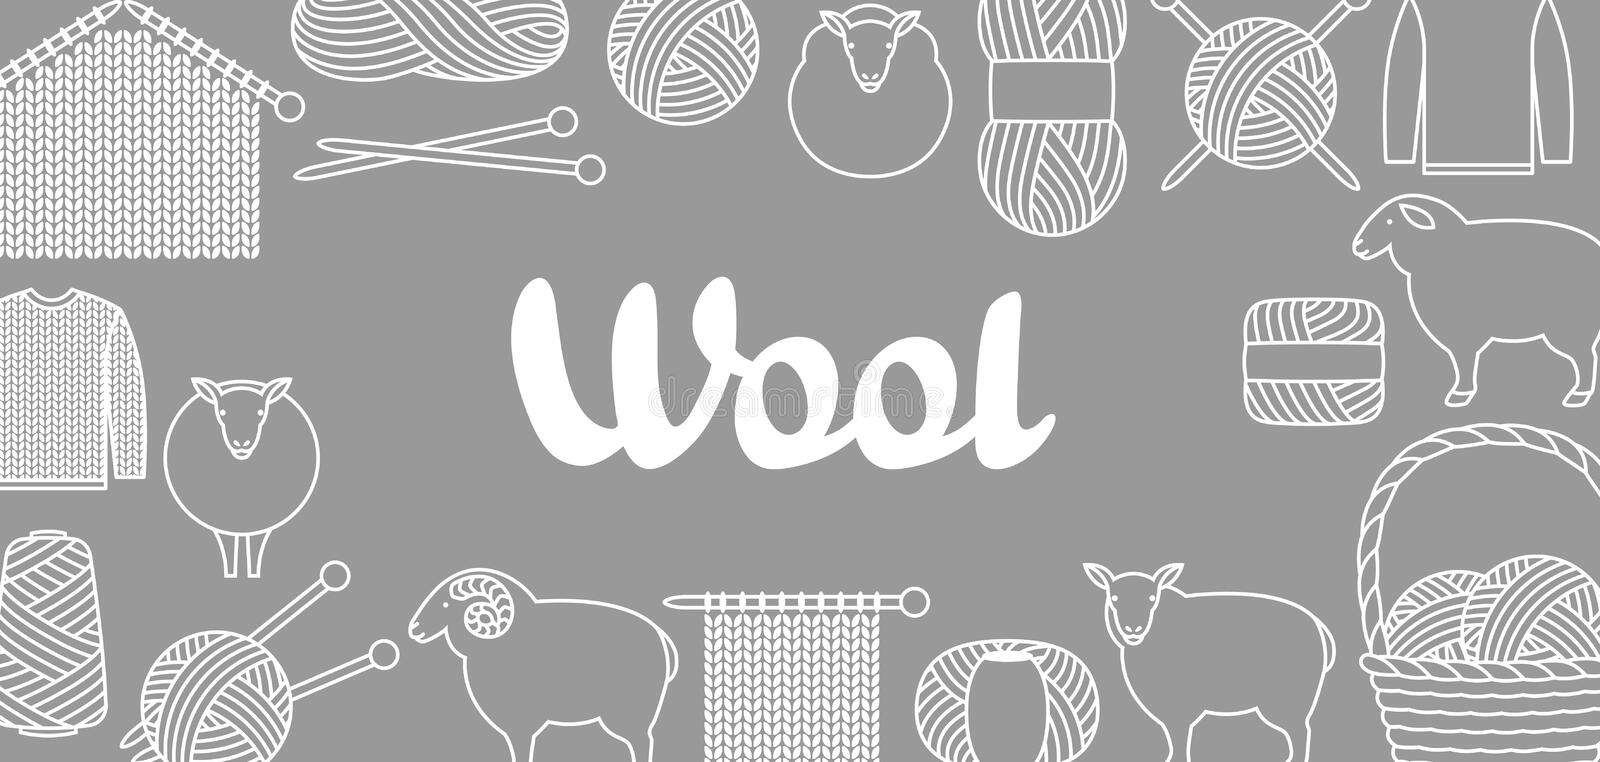 Background with wool items. Goods for hand made, knitting or tailor shop.  royalty free illustration